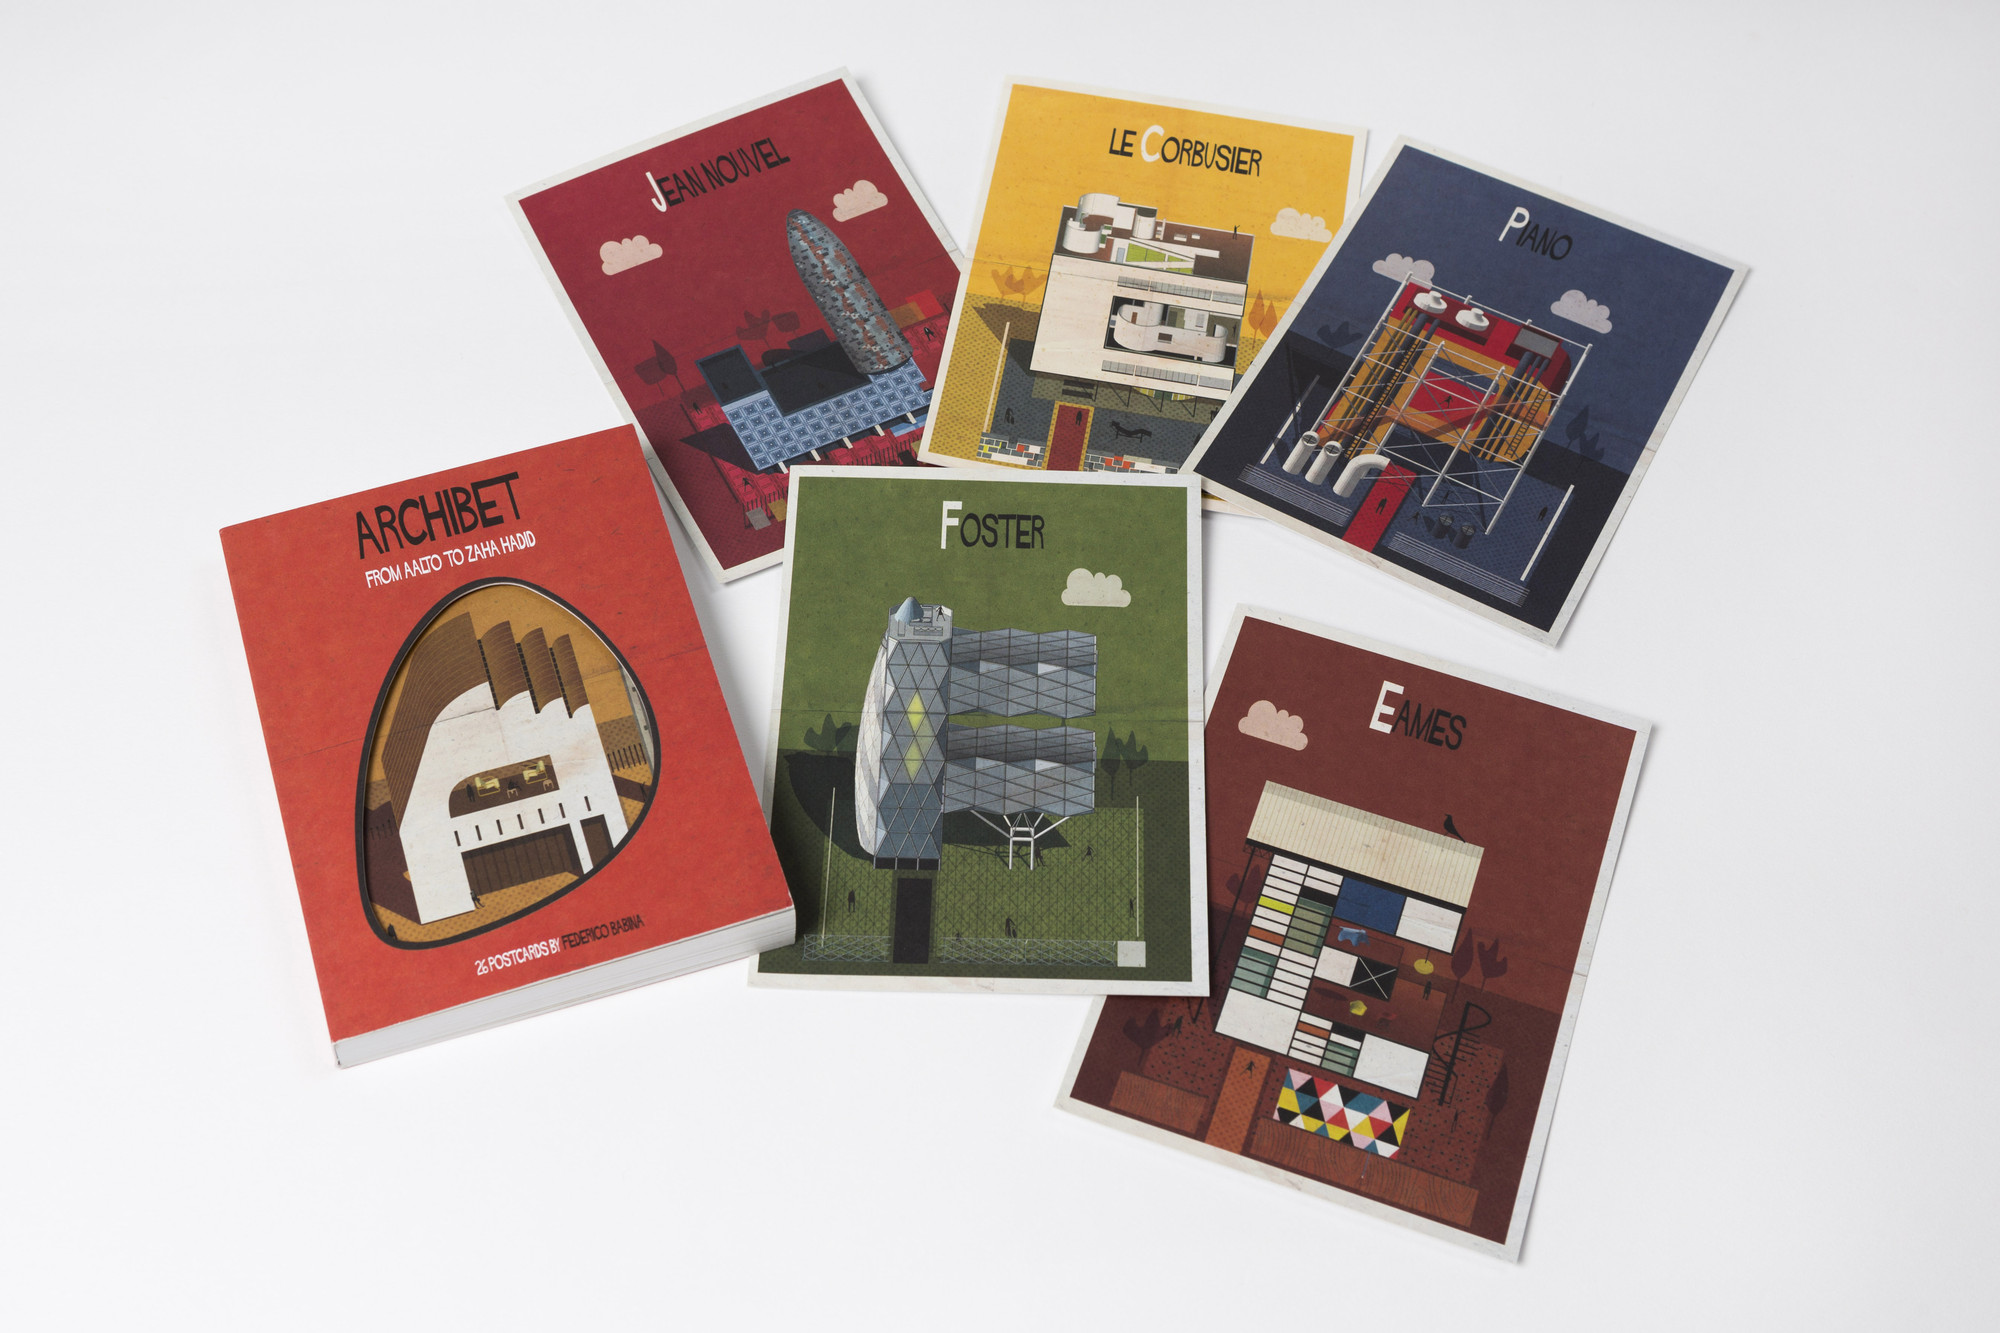 Win a Postcard Set of Federico Babina's Archibet, the Illustrated Alphabet of Architects, Archibet / Federico Babina. Image Courtesy of Laurence King